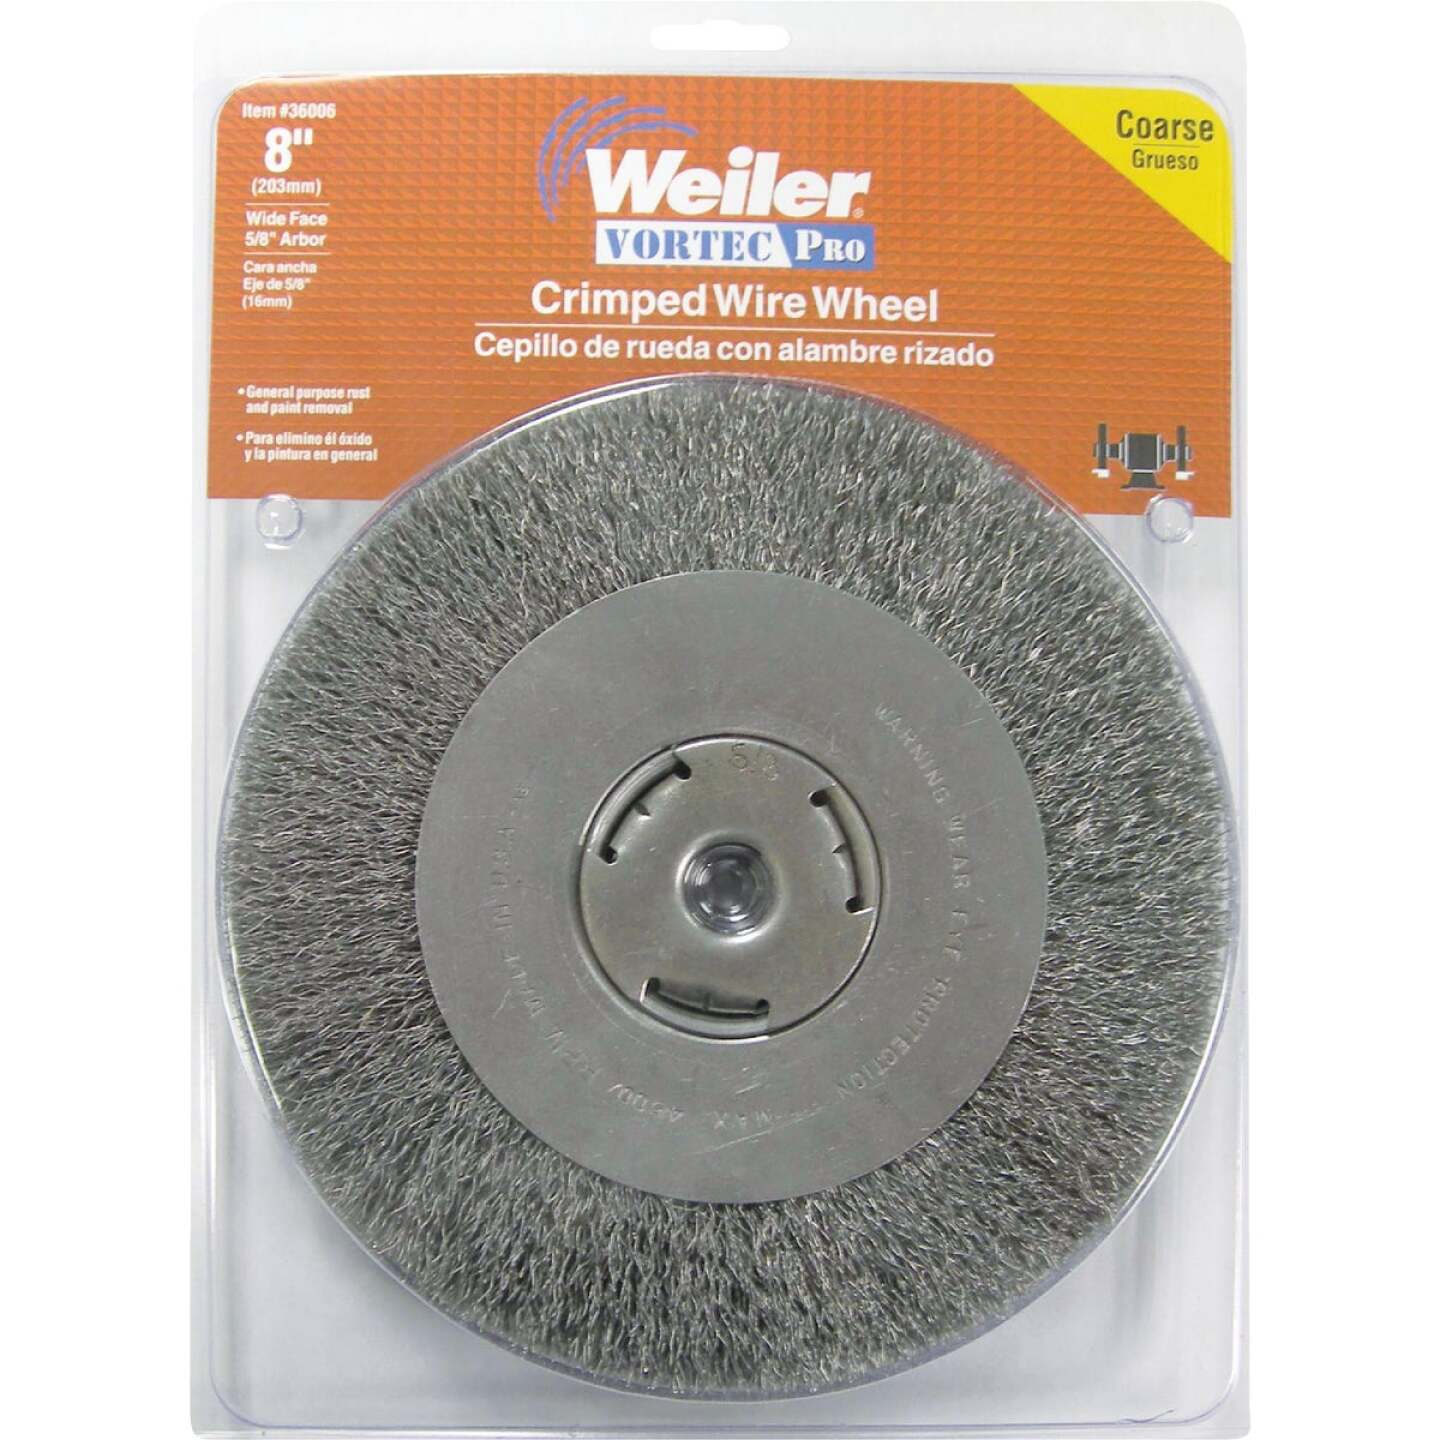 Weiler Vortec 8 In. Crimped Bench Grinder Wire Wheel Image 2